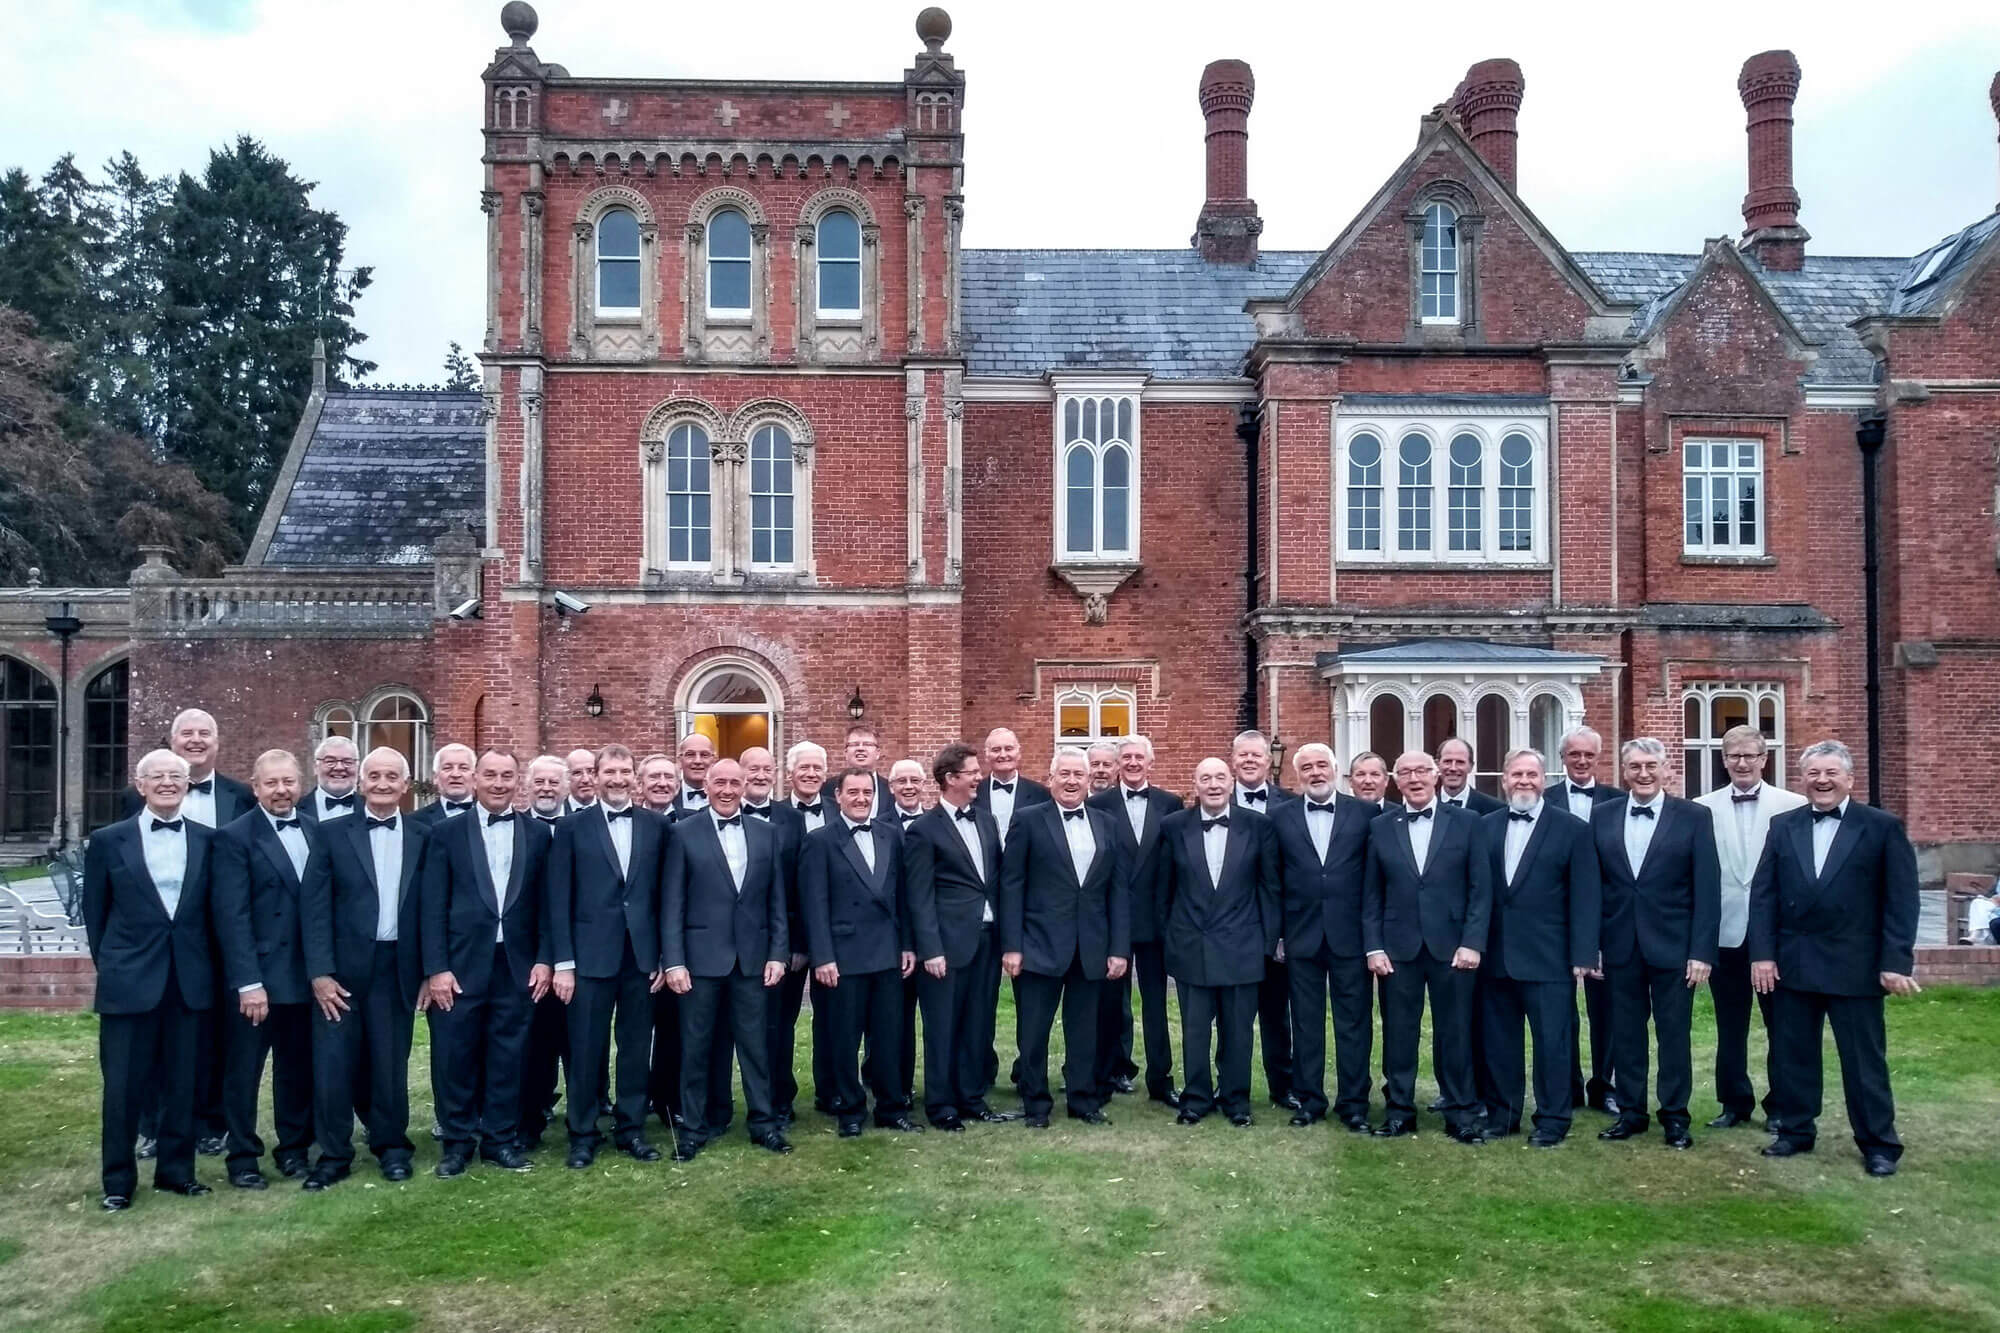 Monmouth Male Voice Choir